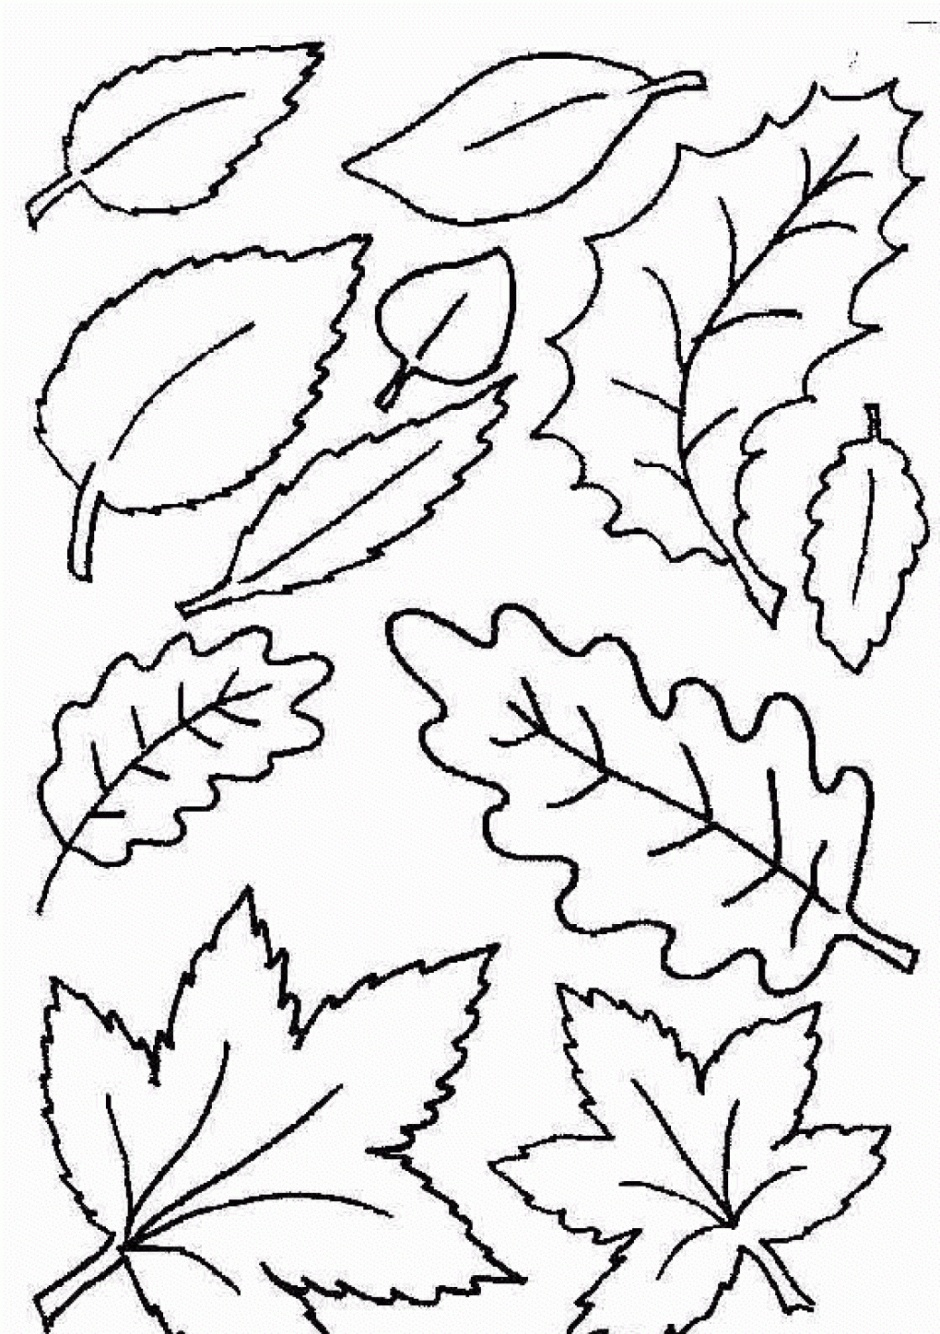 Coloring Ideas : Free Printable Leaf Coloring Pages Fall Leaves And - Free Printable Leaf Coloring Pages